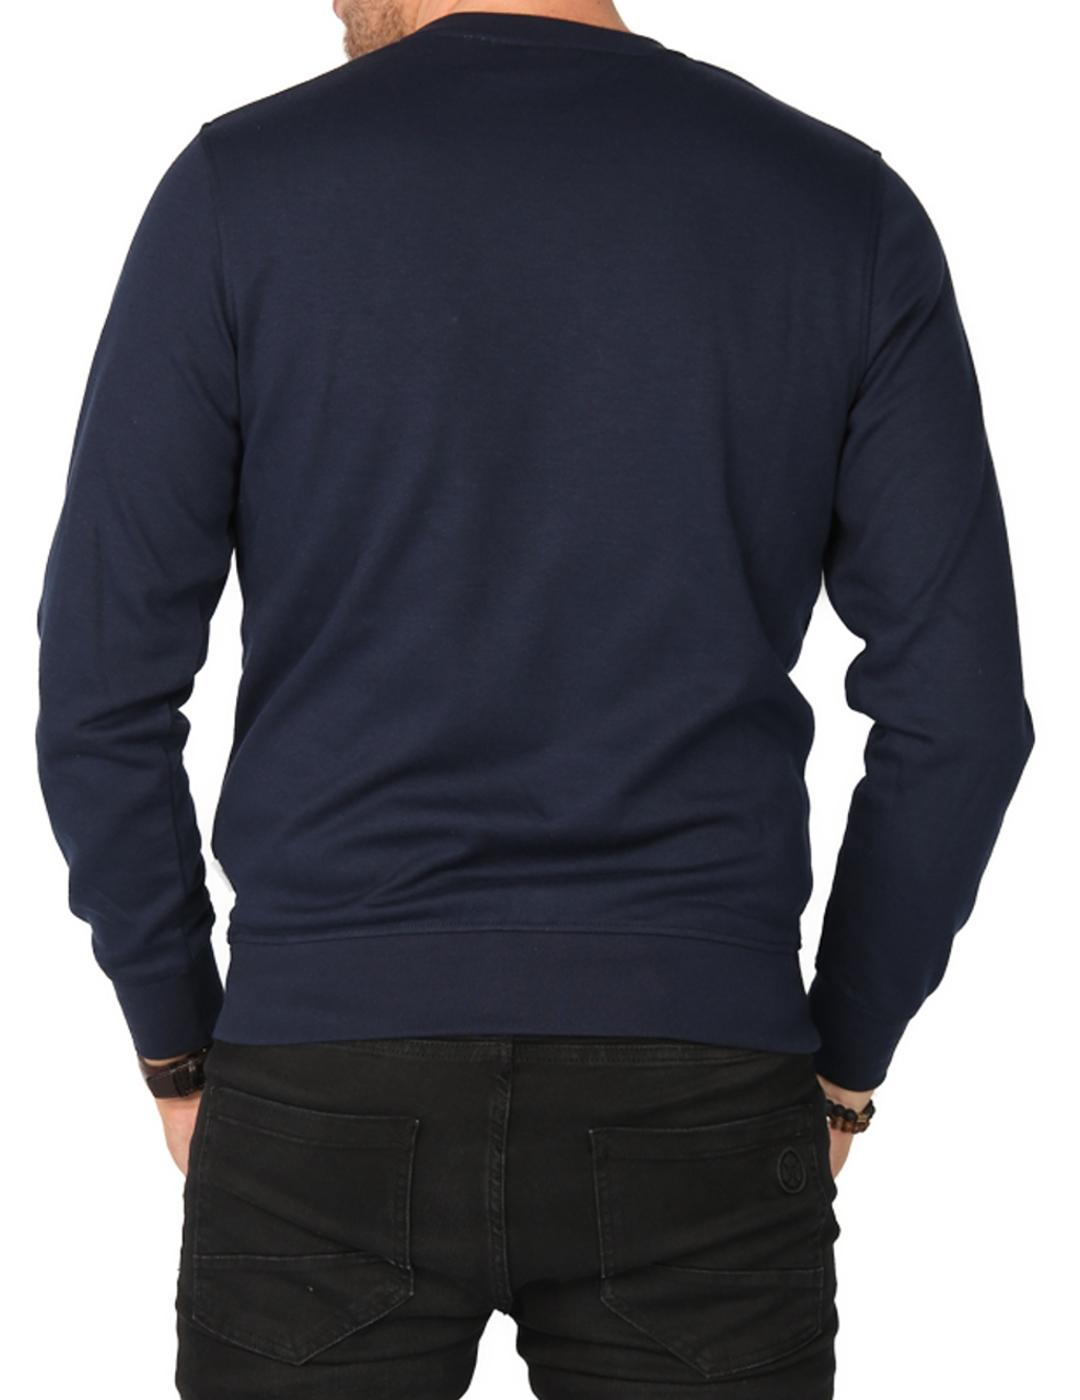 JCOMATTEO CREW SWEAT NAVY-X